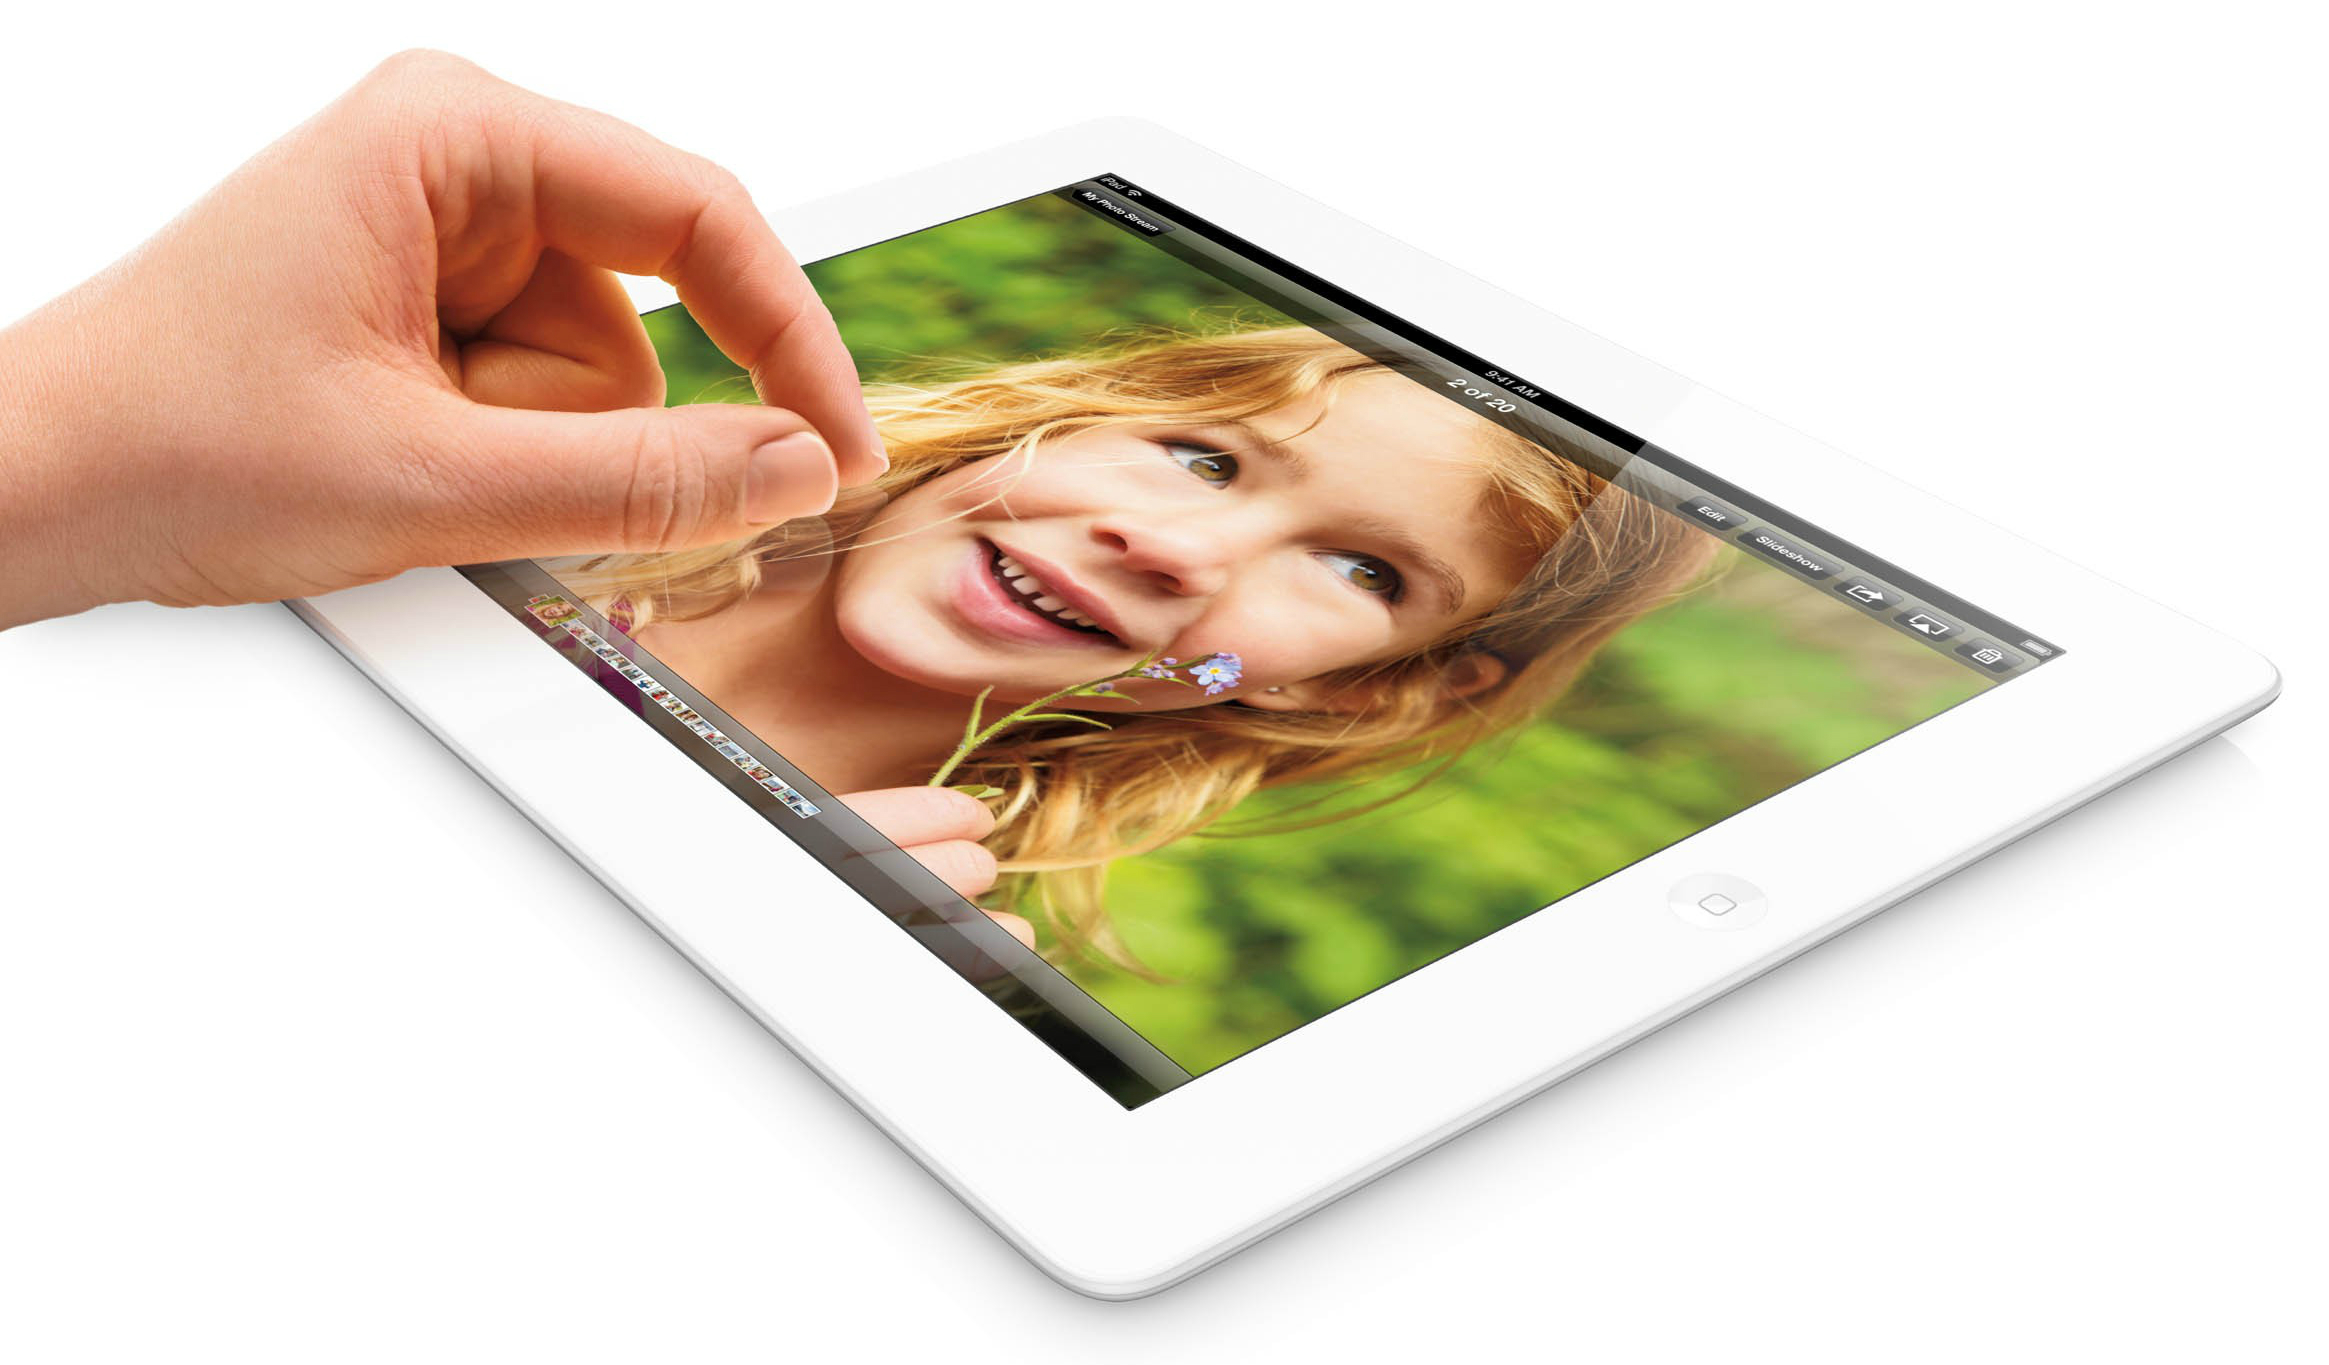 Apple iPad 4 with Retina Display